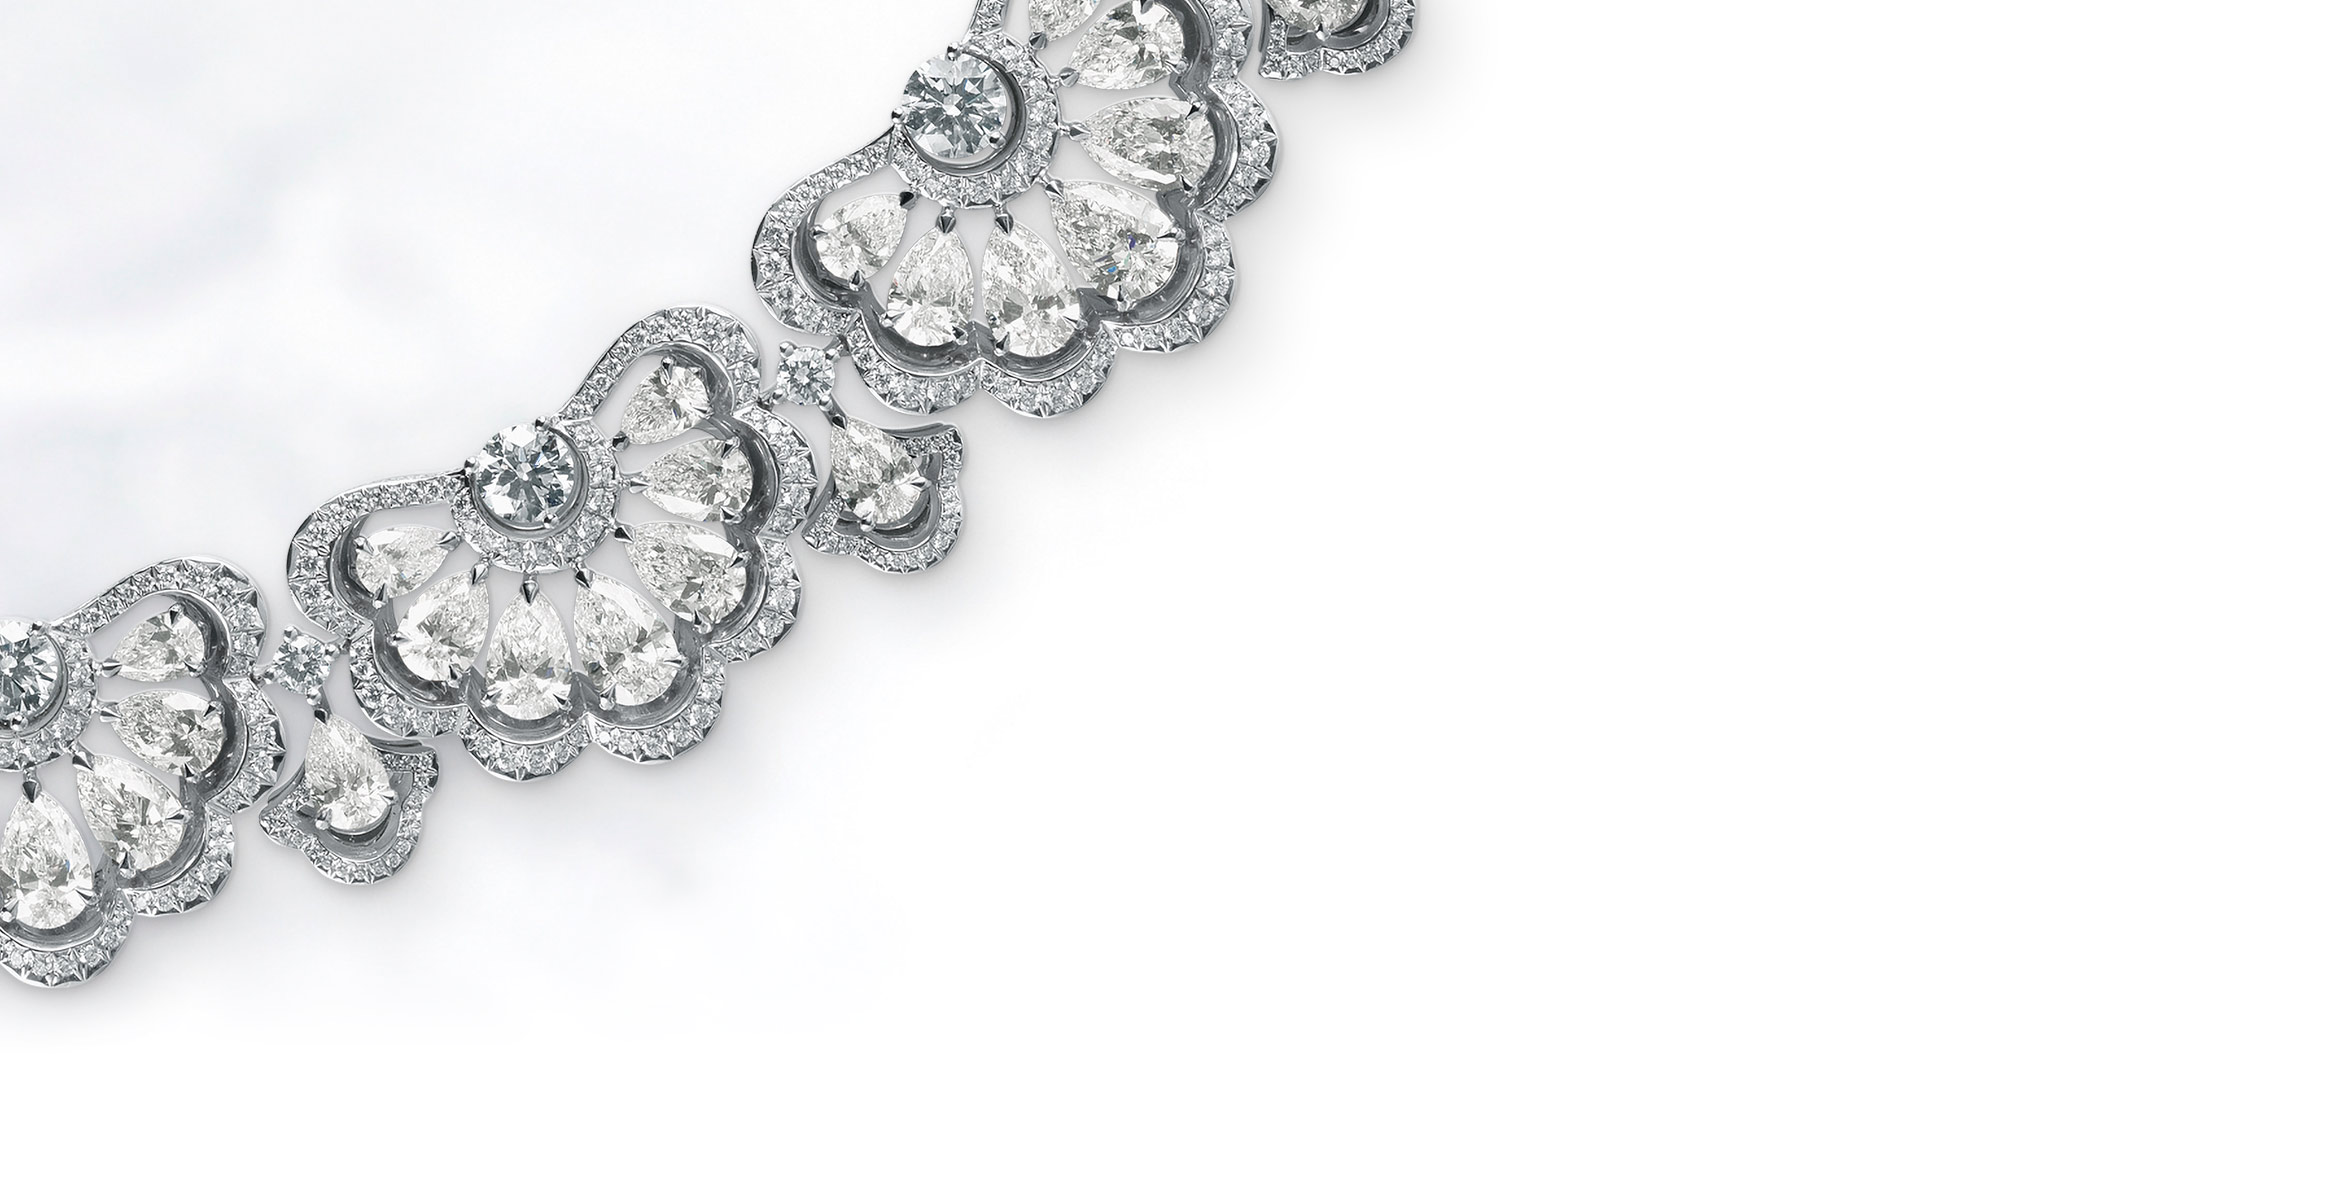 The Precious lace collection by Chopard, with a sparkling silver flower